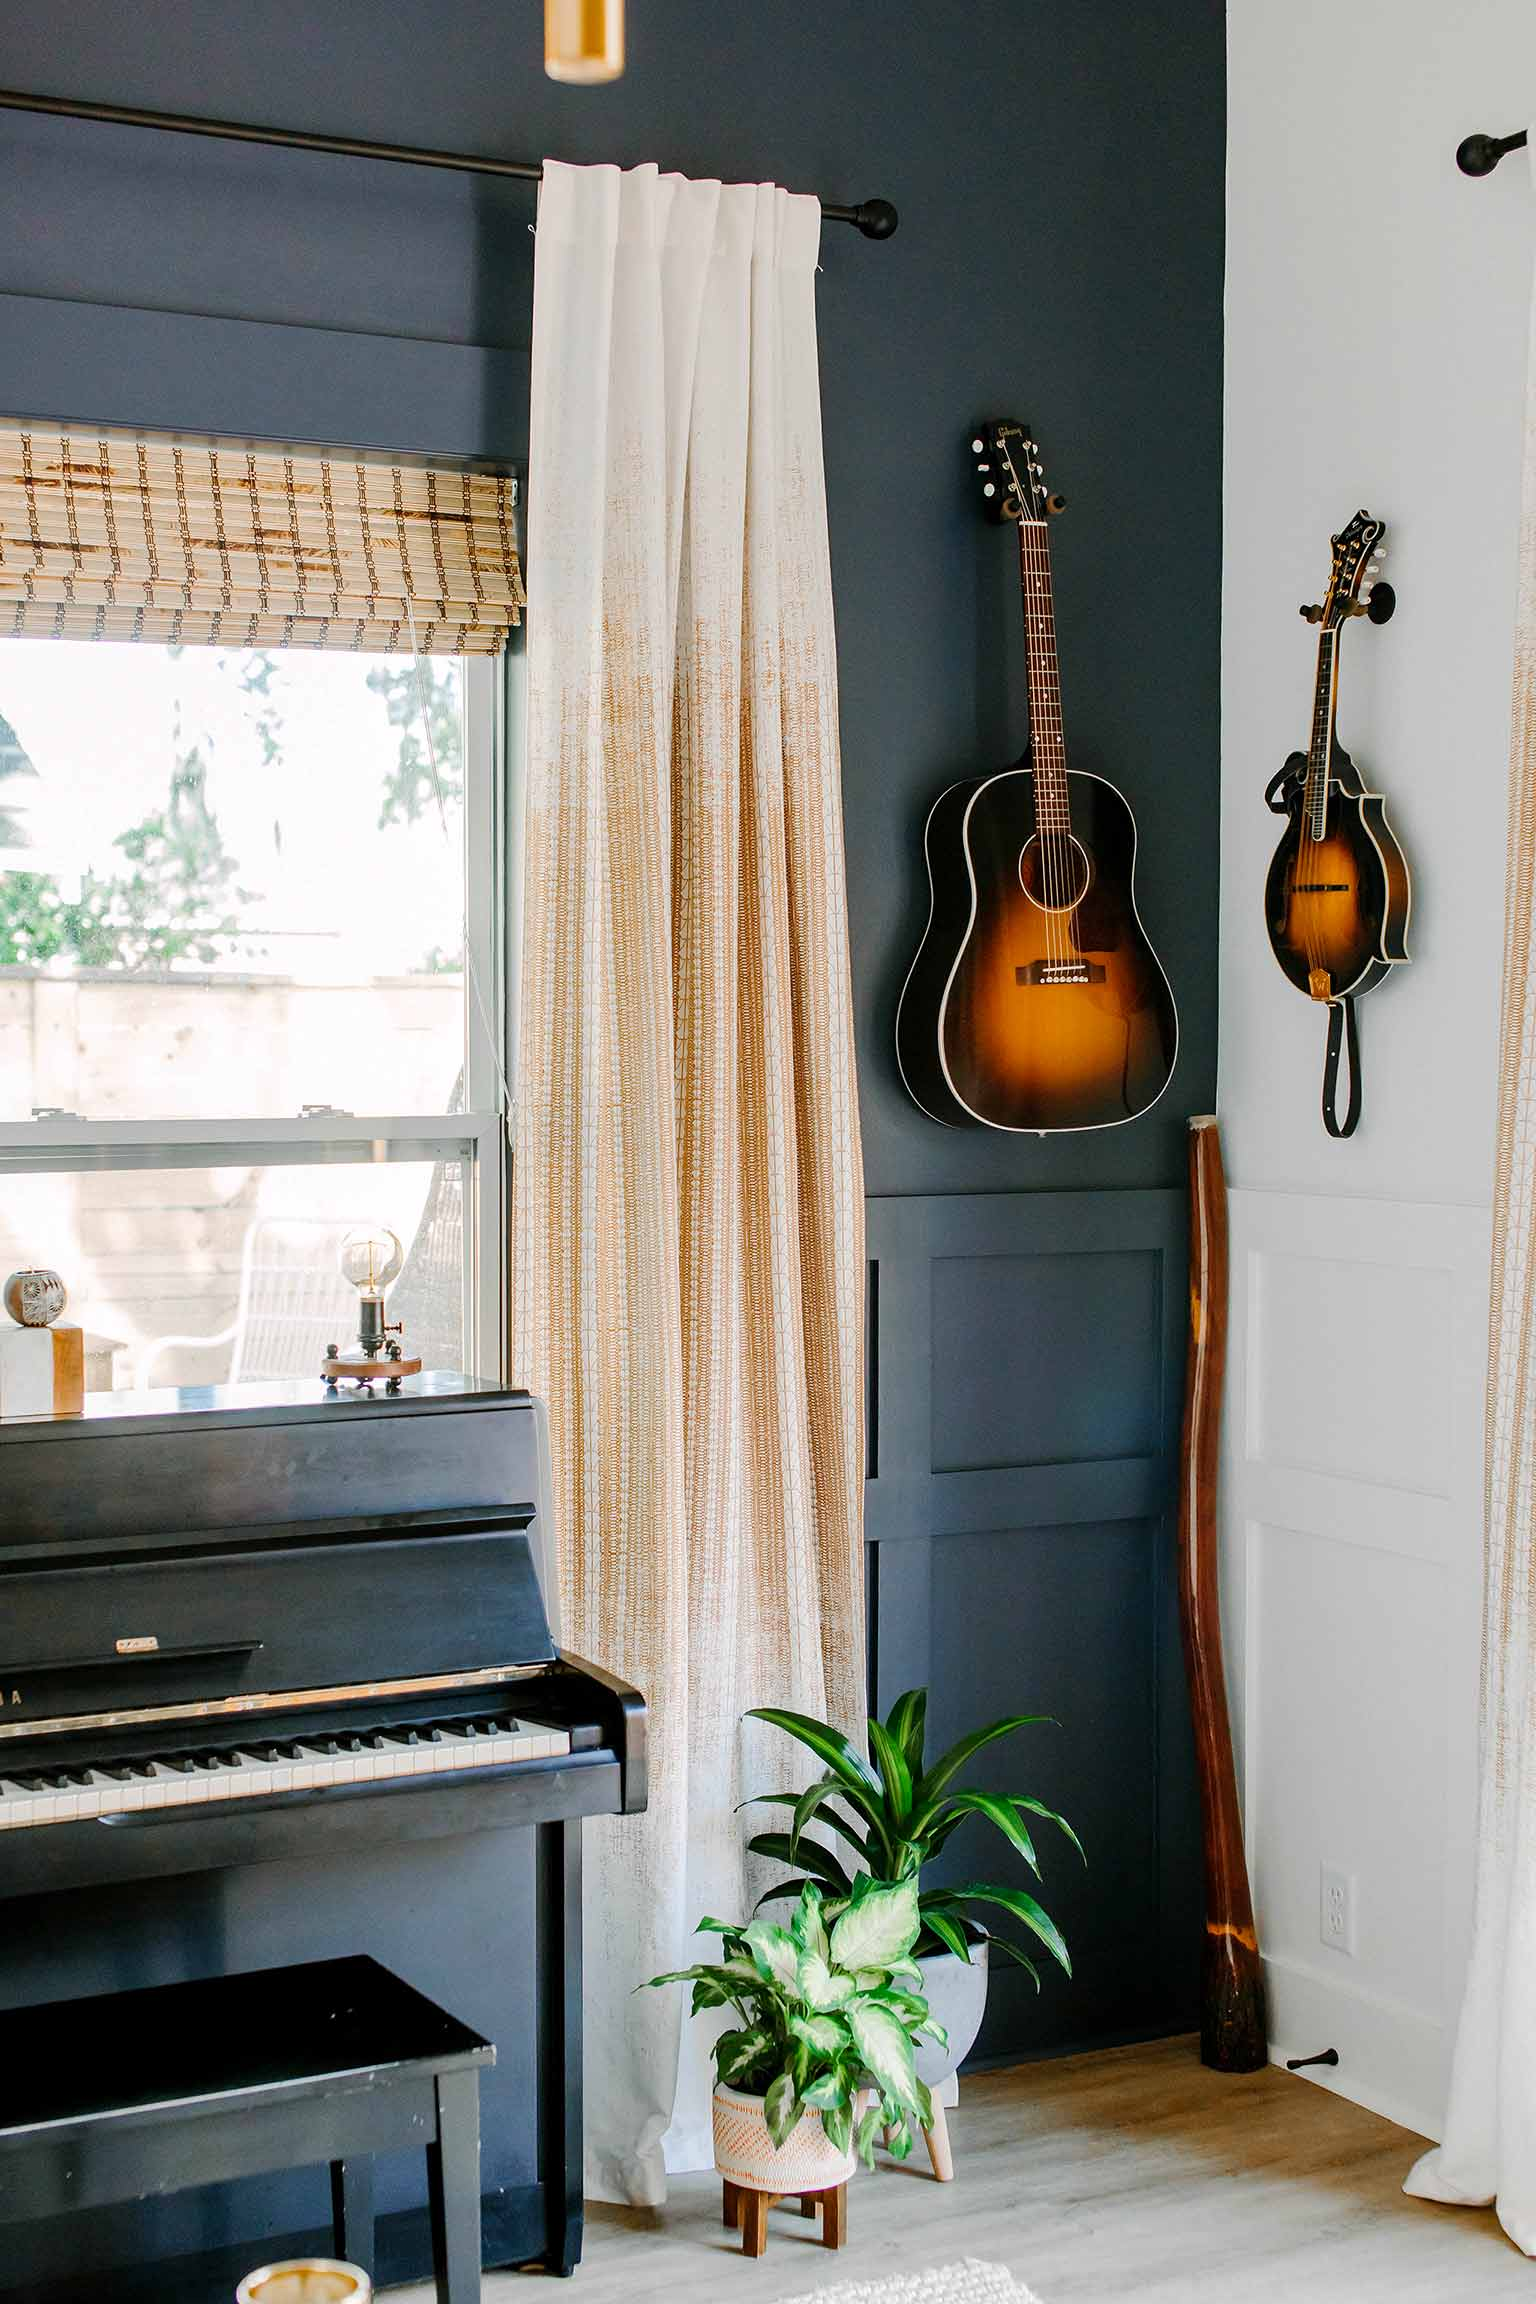 Hanging guitar and mandolin - The Guest House Reveal - That Homebird Life Blog